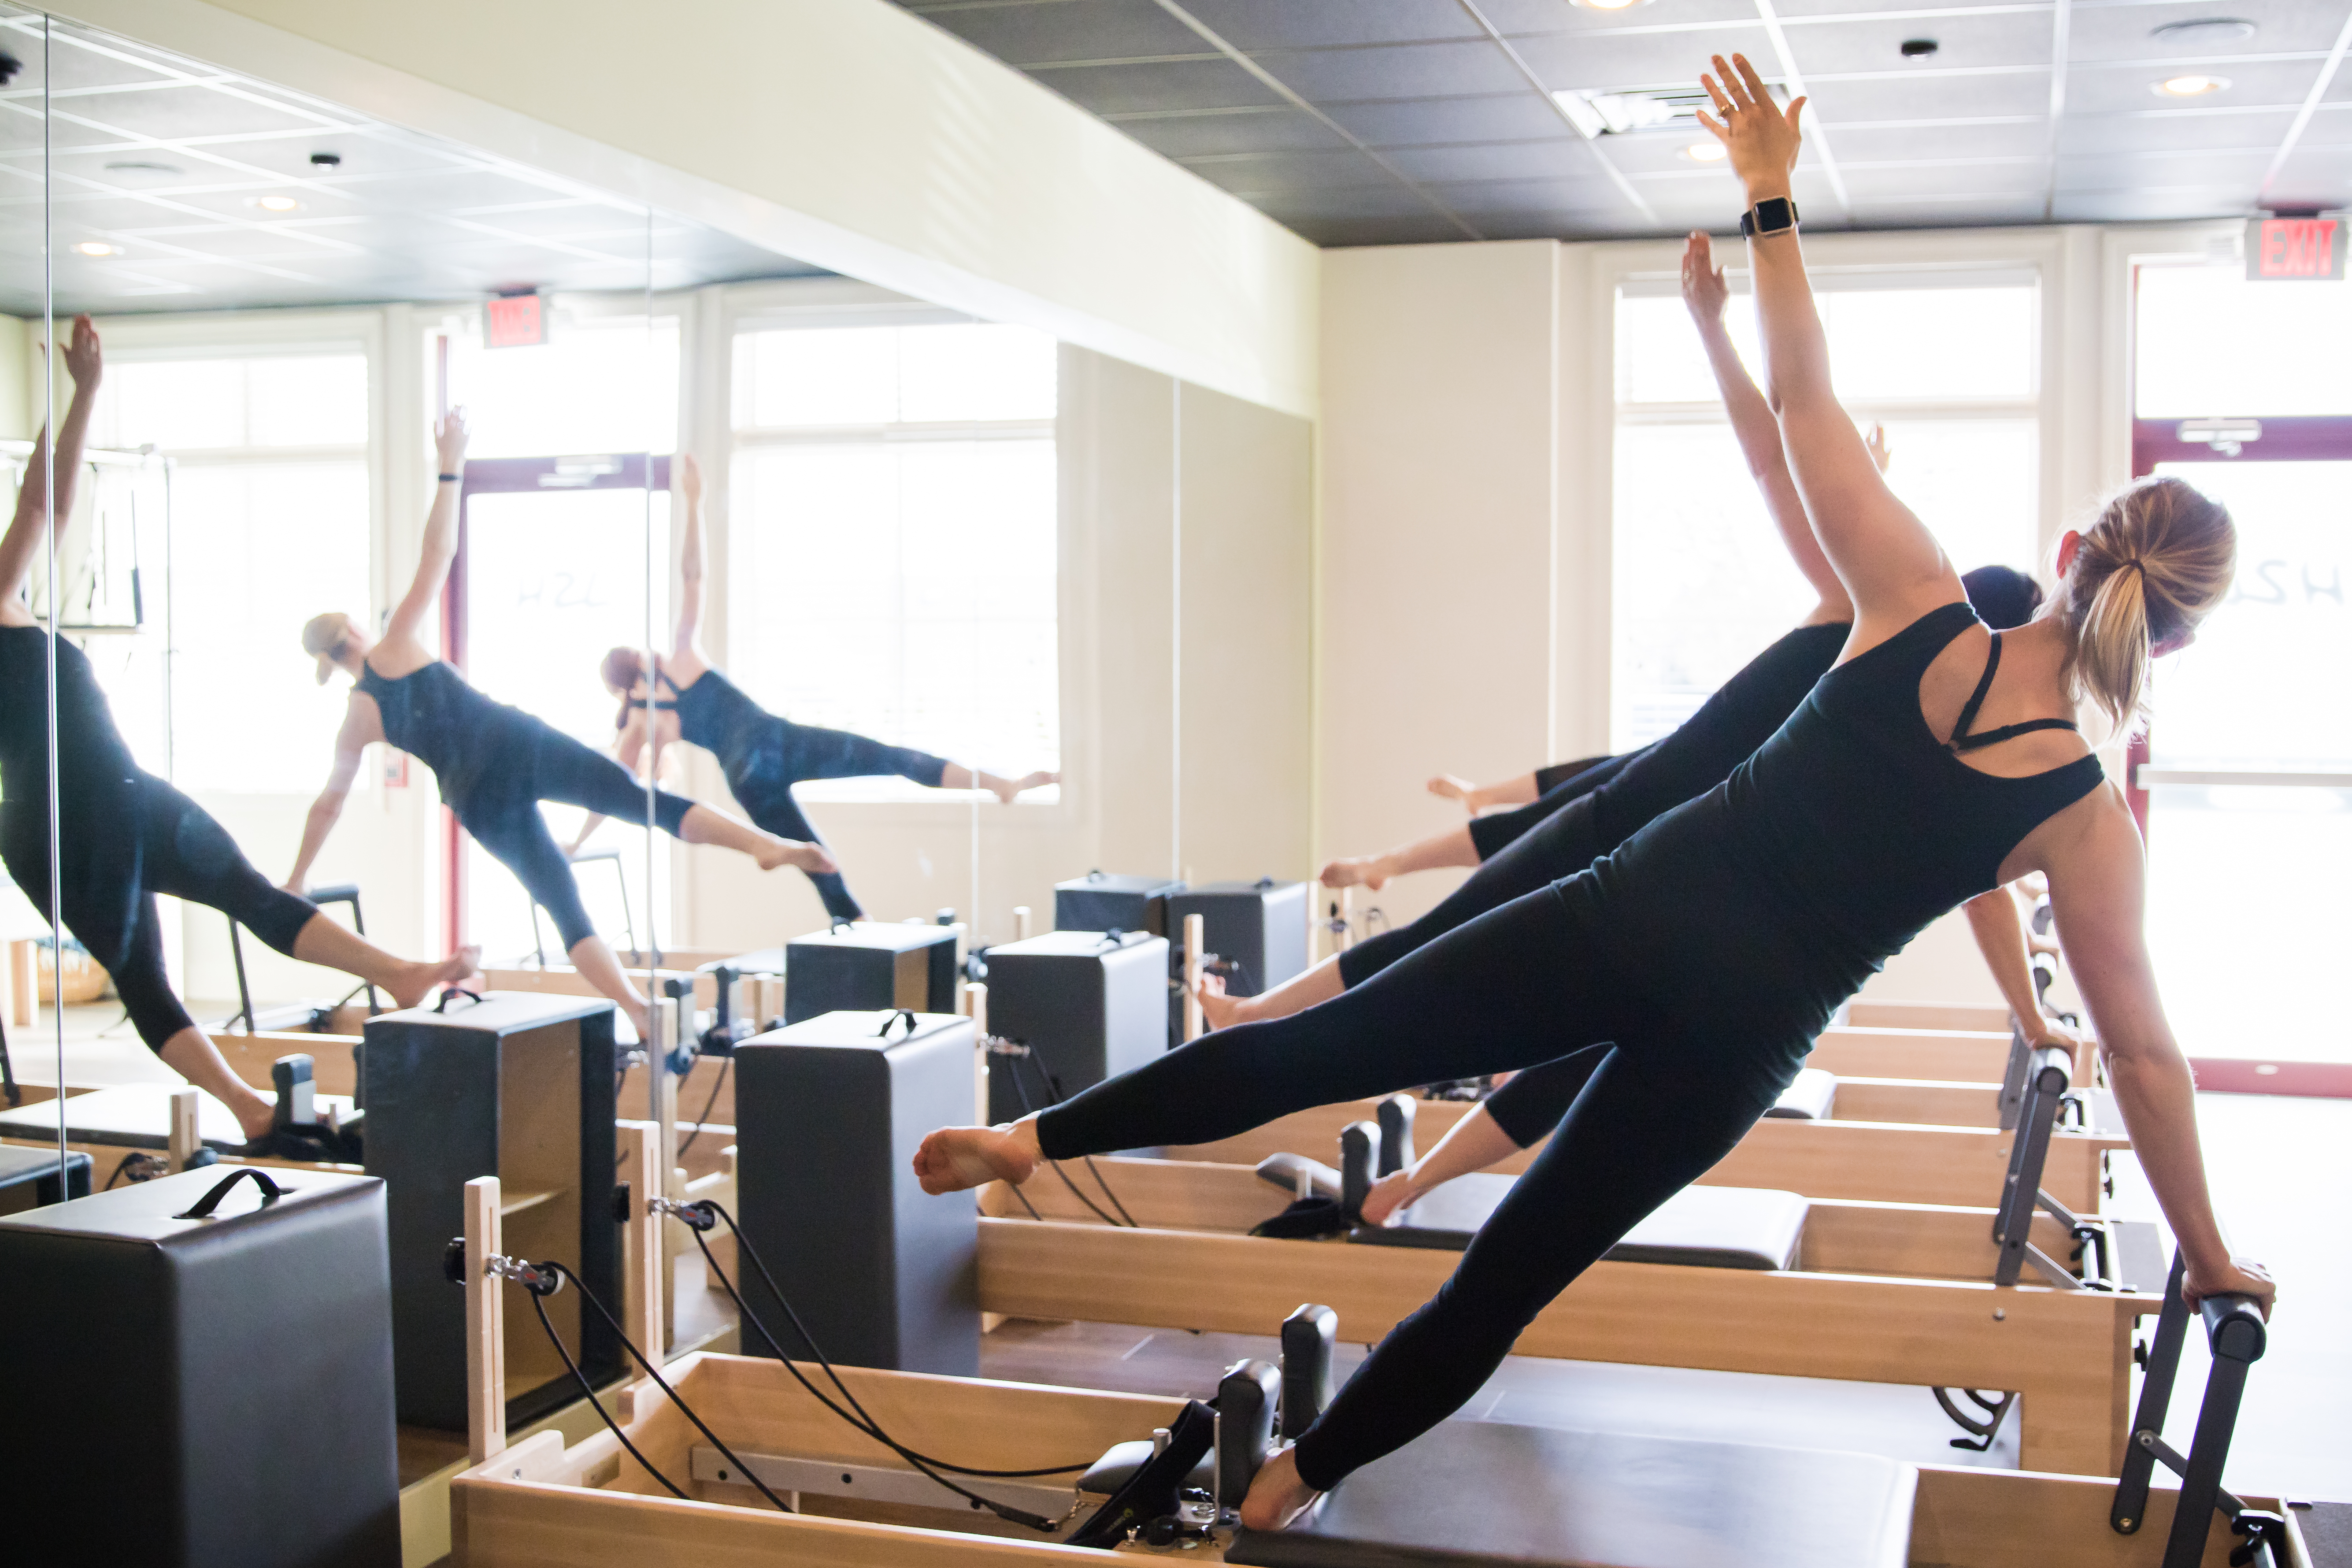 Where to Buy Pilates Equipment forecast